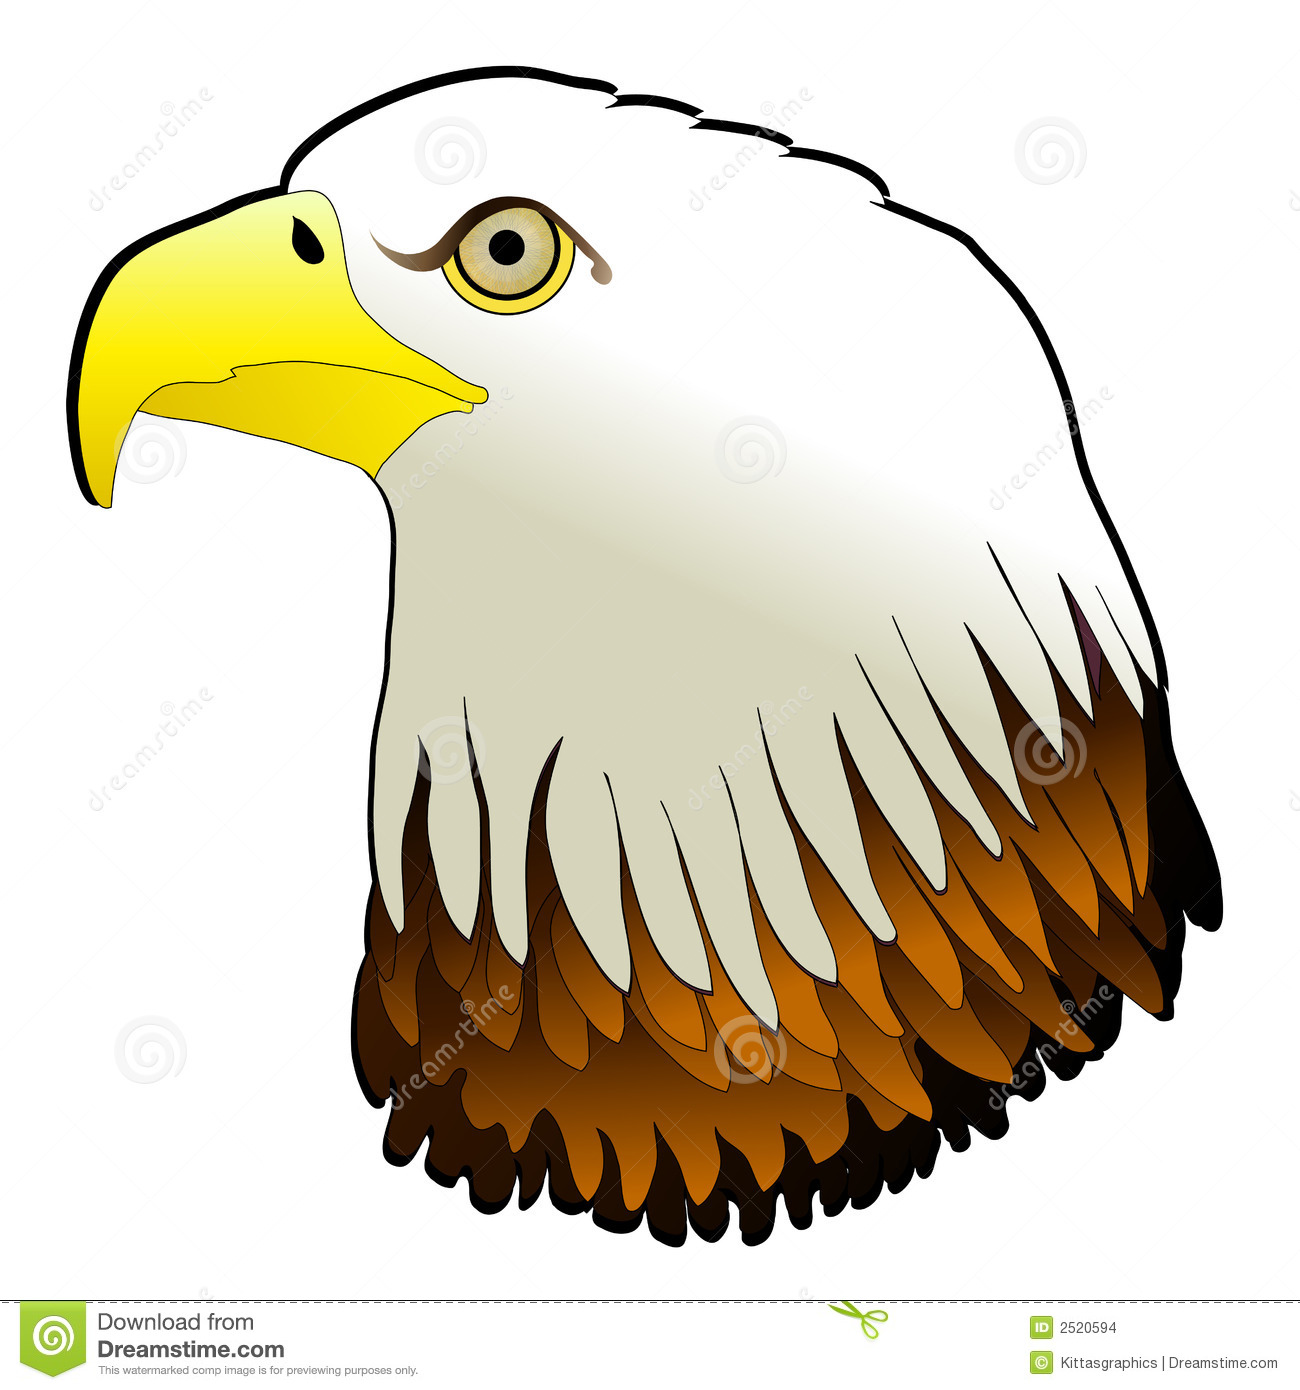 Clipart of bald eagle.